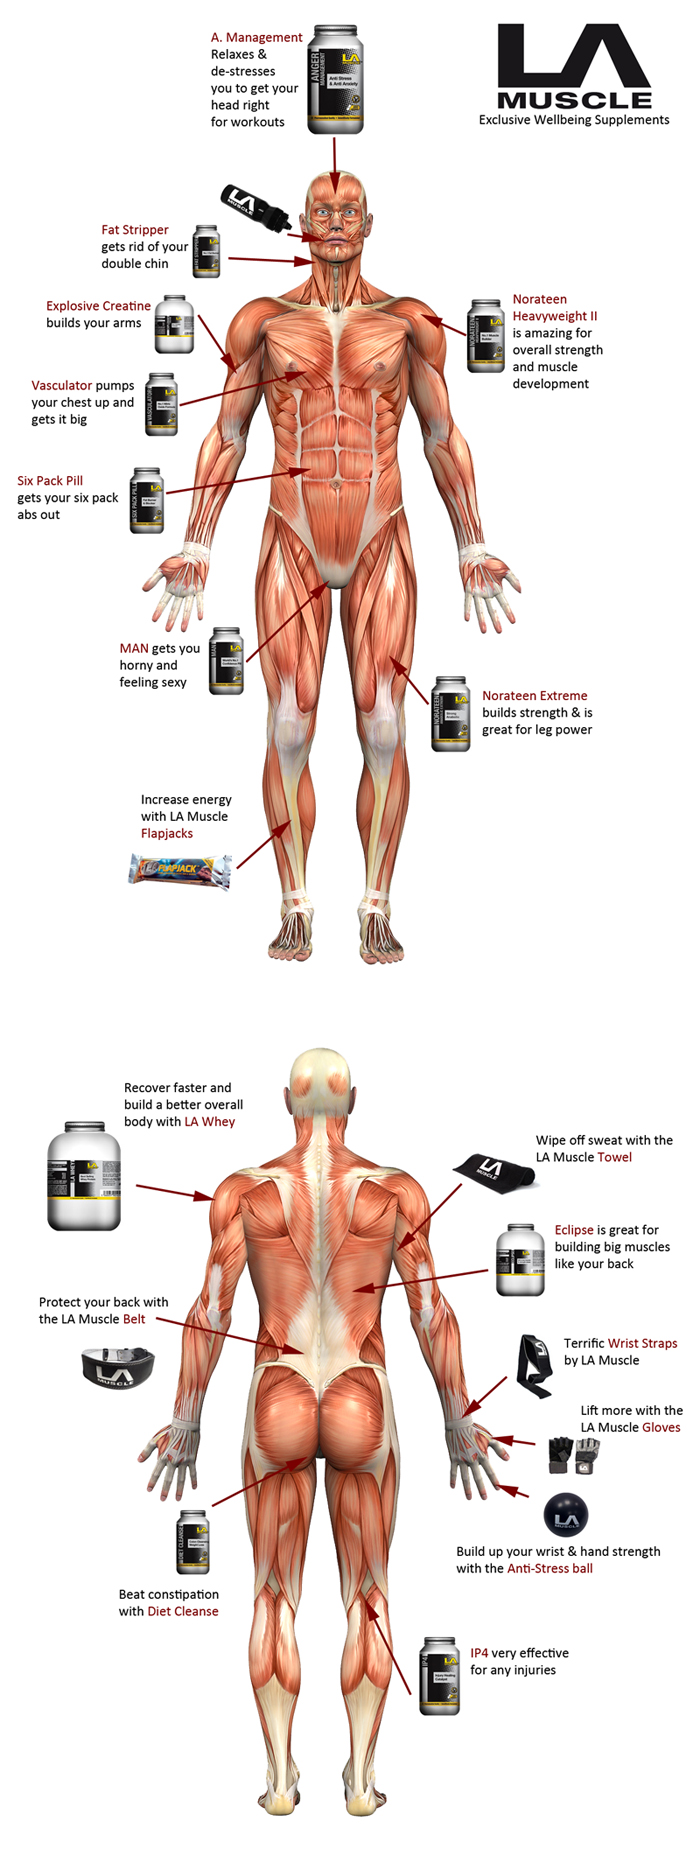 Which supplement is good for which body part? LA Muscle